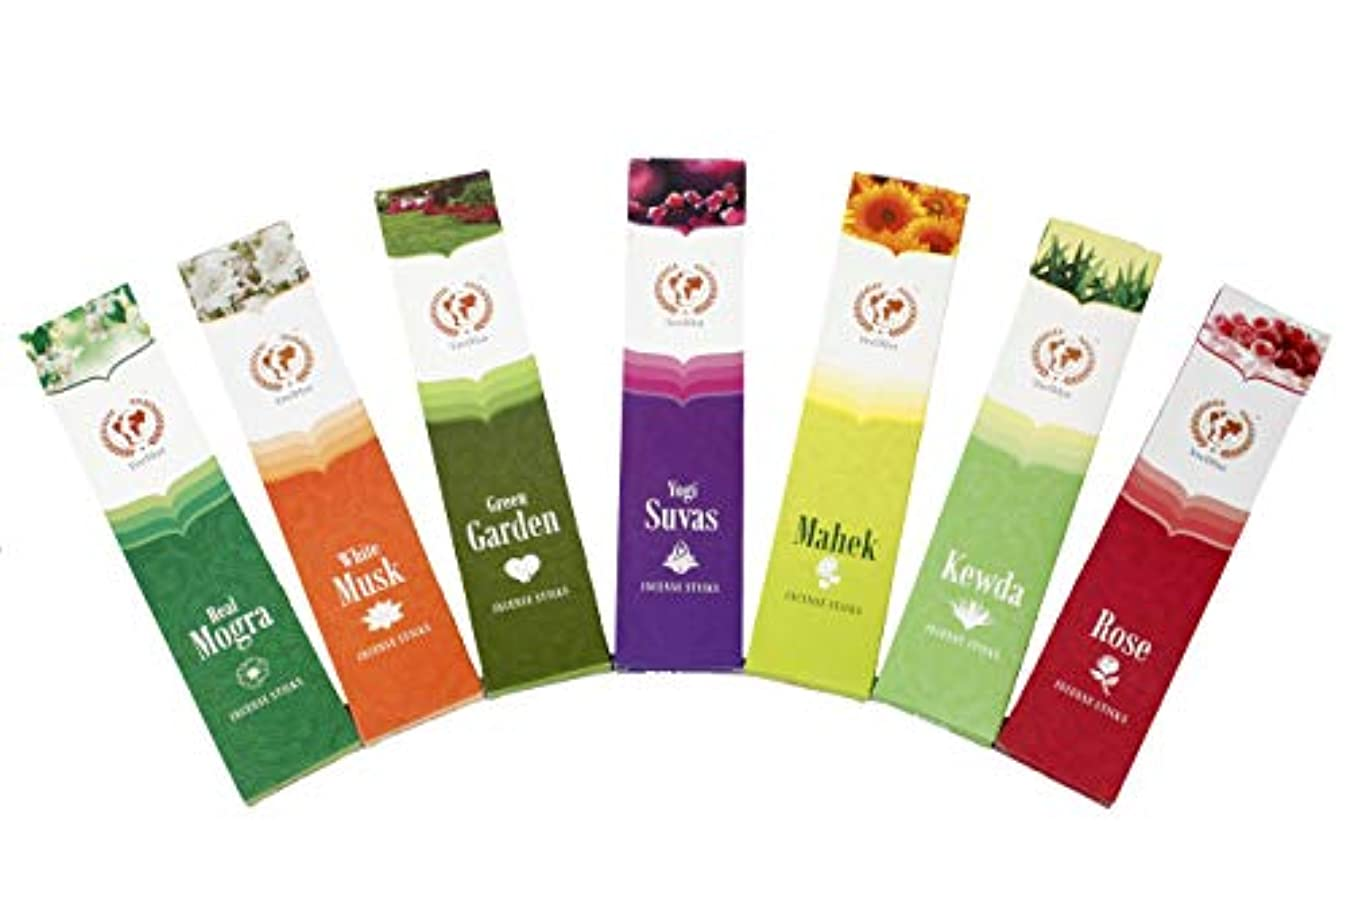 弾力性のある隣接同志VeeDInt Premium Quality Incense Sticks | Real Mogra, White Musk, Green Garden, Yogi Suvas, Mahek, Kewda, Rose, Scented and Colored Pack of 7